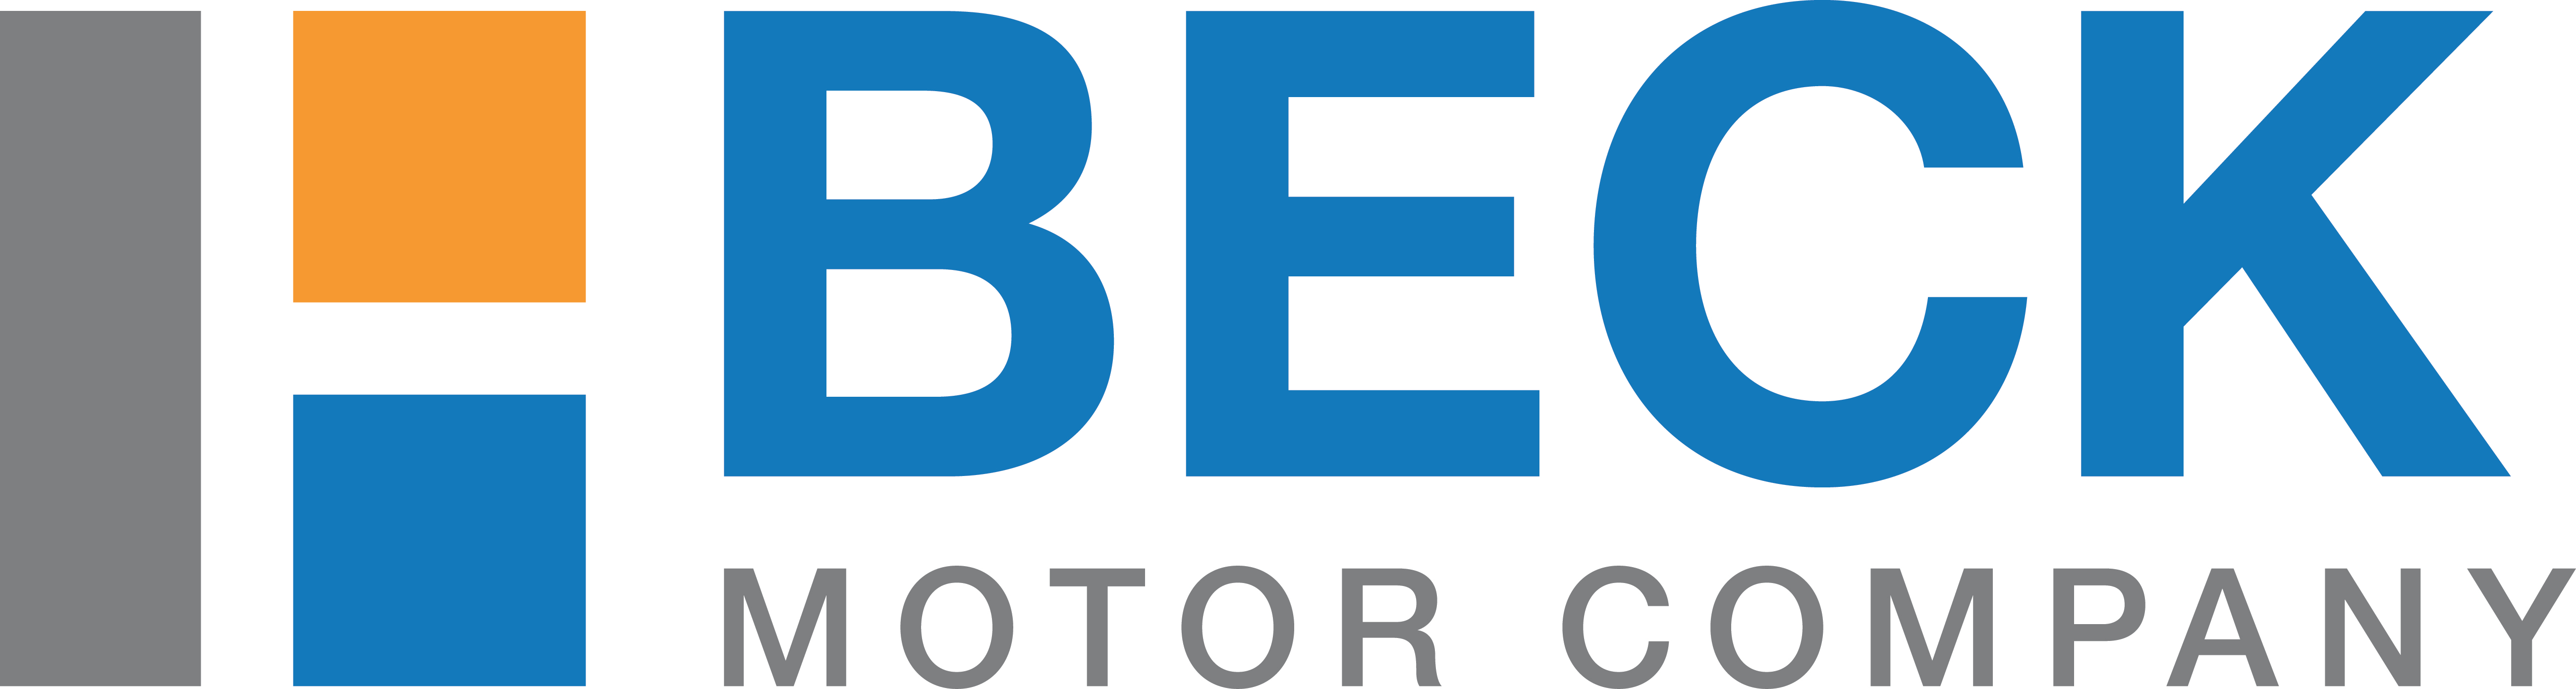 beck motor company in pierre sd auto dealers yellow